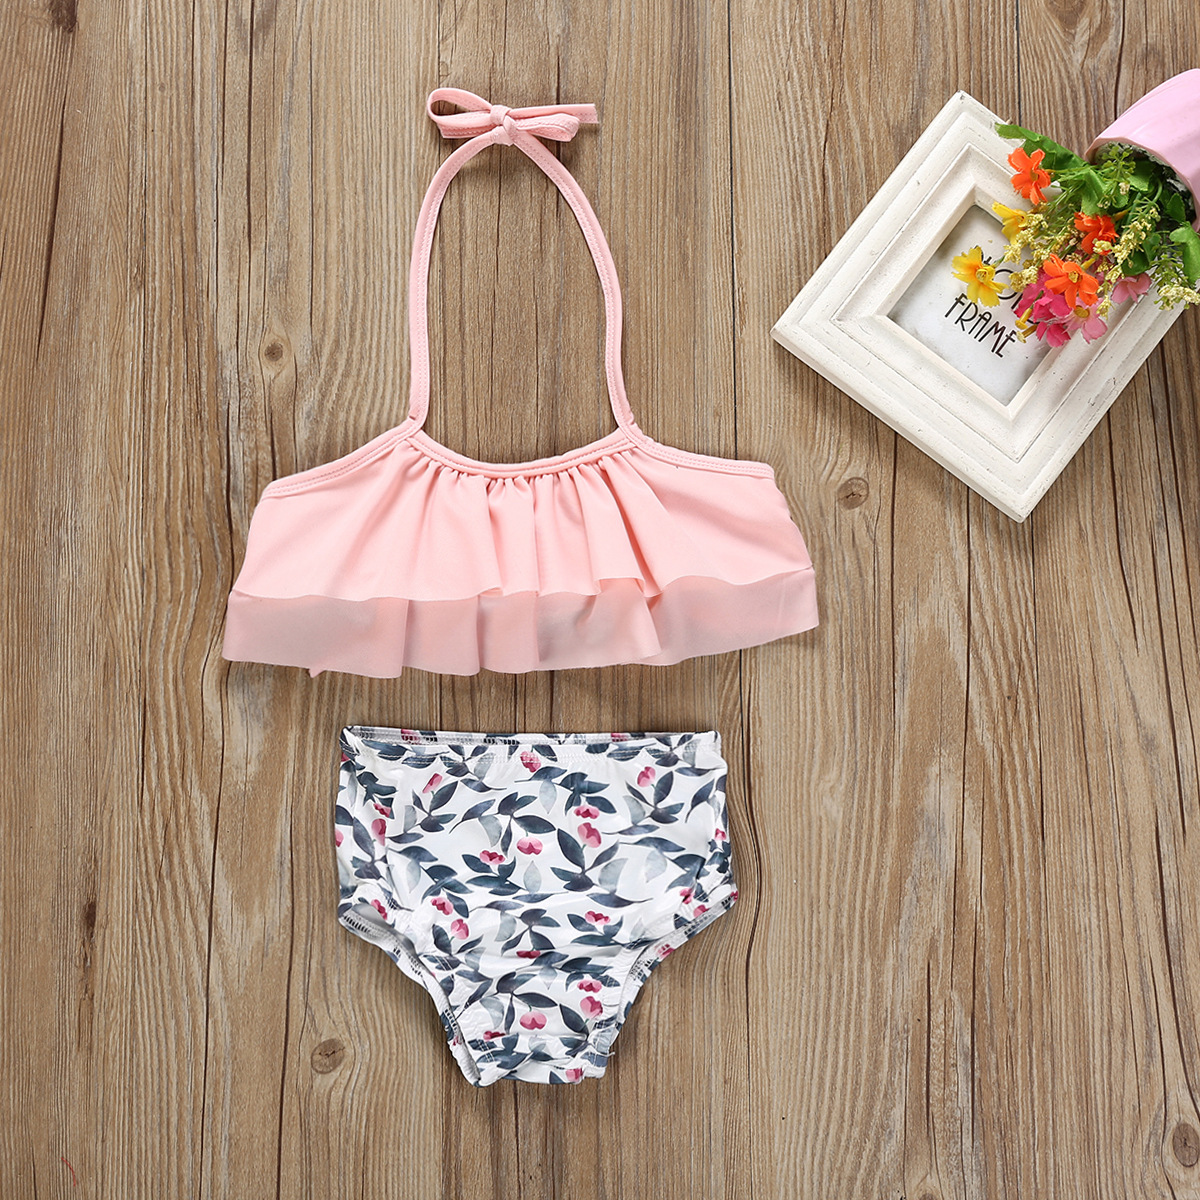 EBay Hot Selling Childrenswear Floral-Print Bathing Suit 2 Pieces